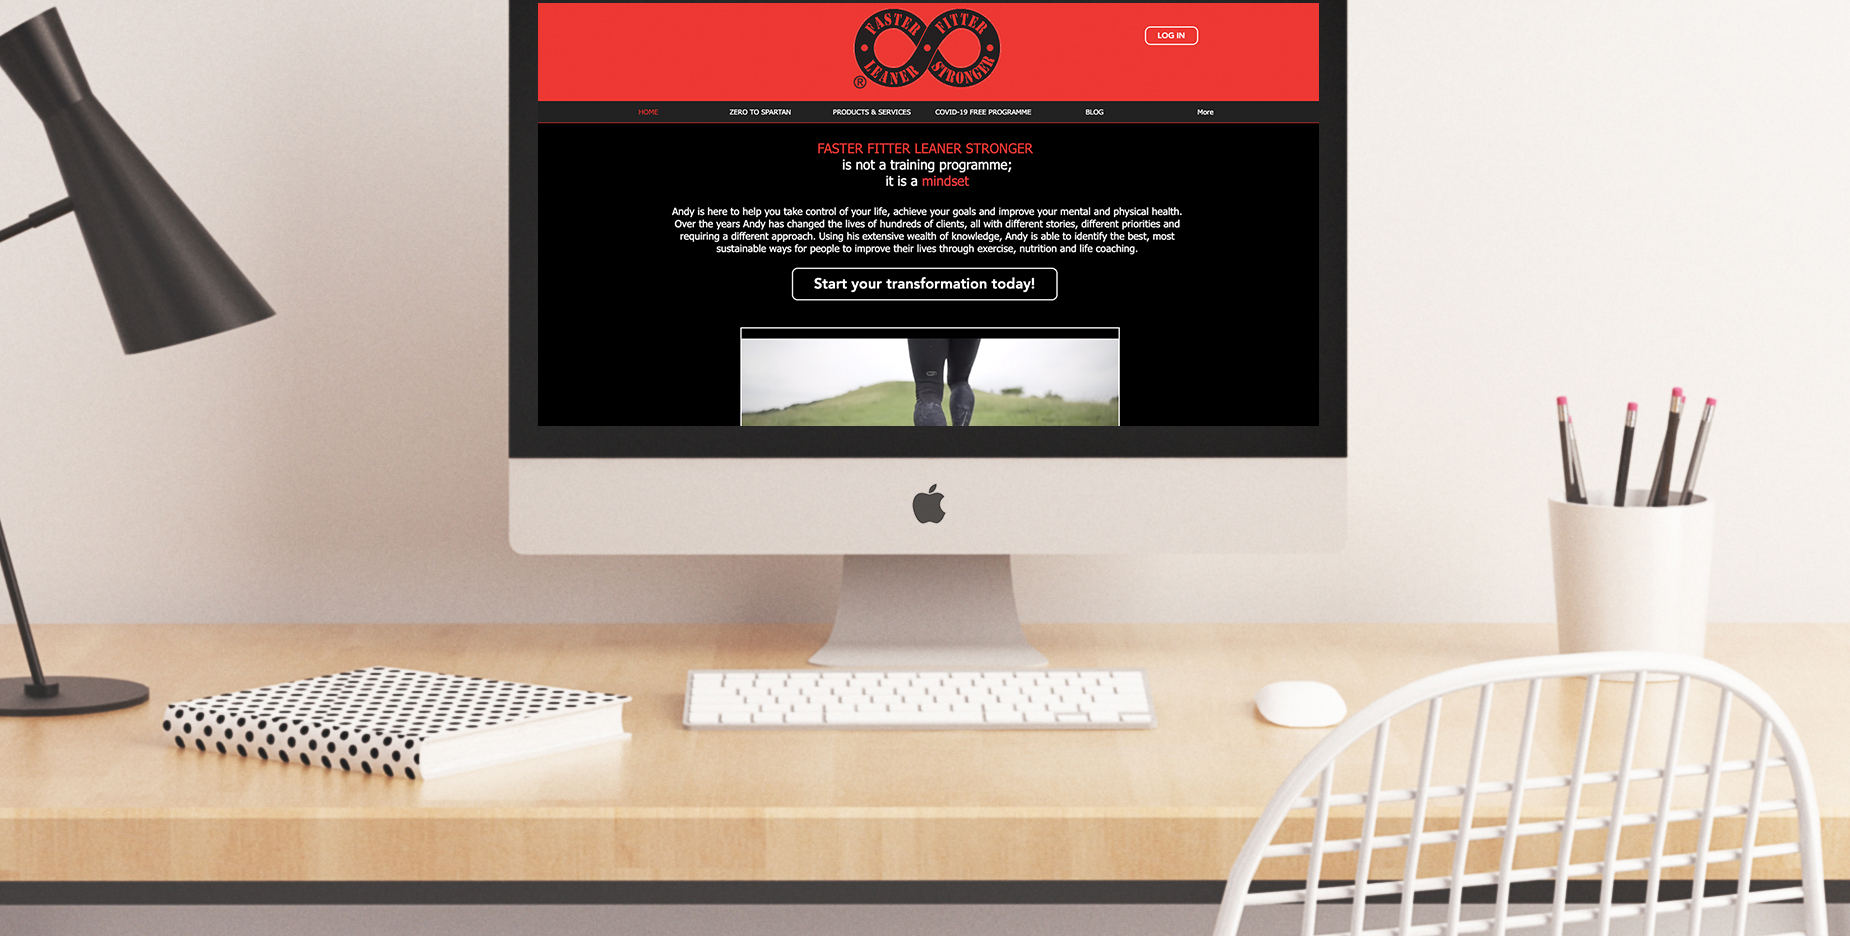 Stunning web design for a Personal Trainer based in Leighton Buzzard